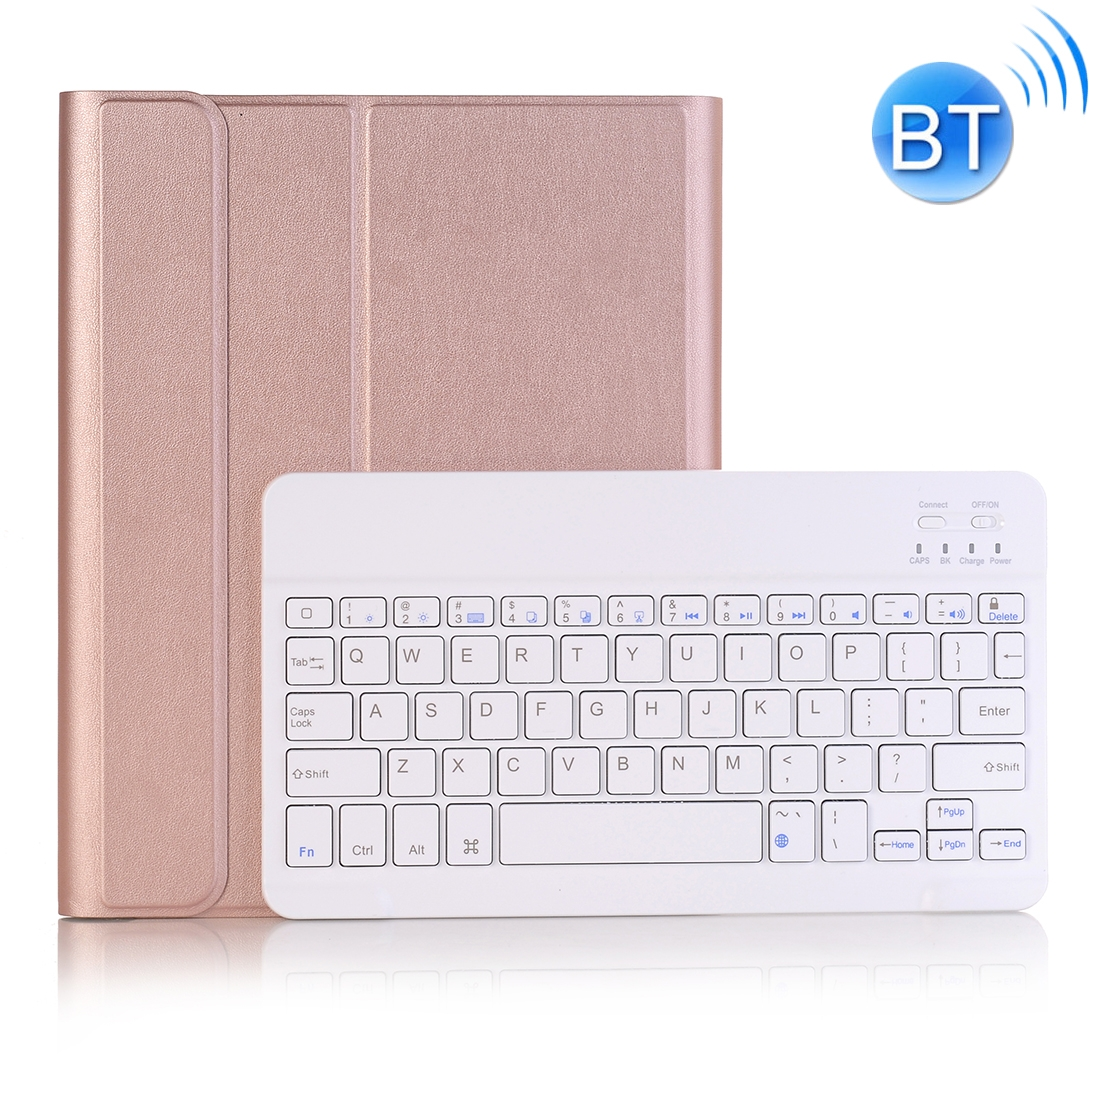 iPad Case With Keyboard & Bluetooth For iPad 10.2 Inch, Leather Case & Backlit Keyboard (Rose Gold)